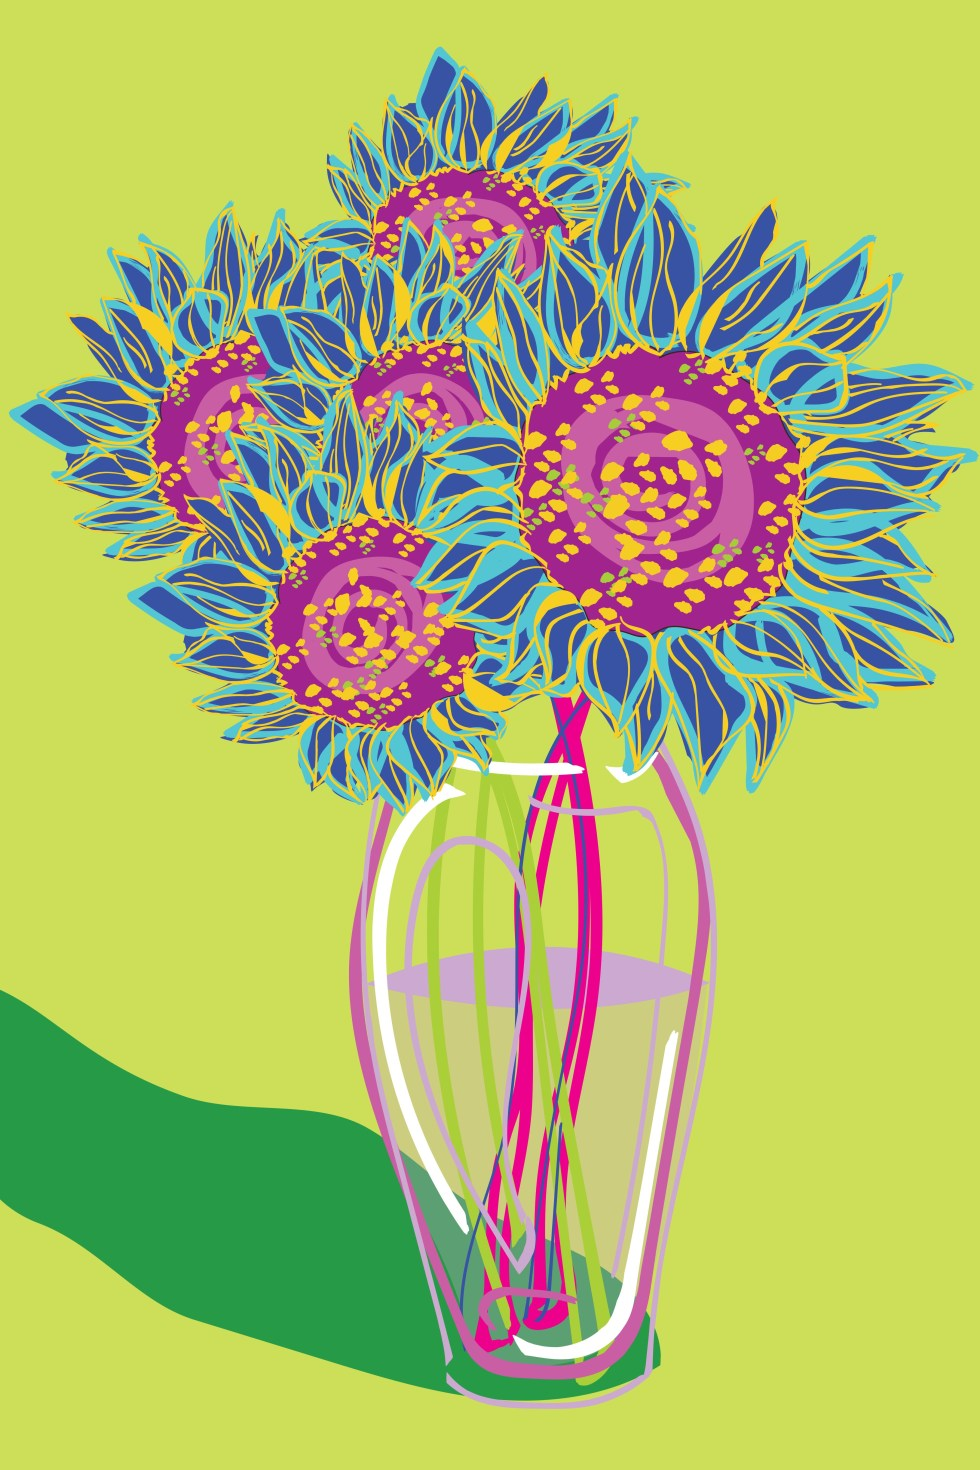 BFA Sunflower Vase FINAL PRINT 6 13 19